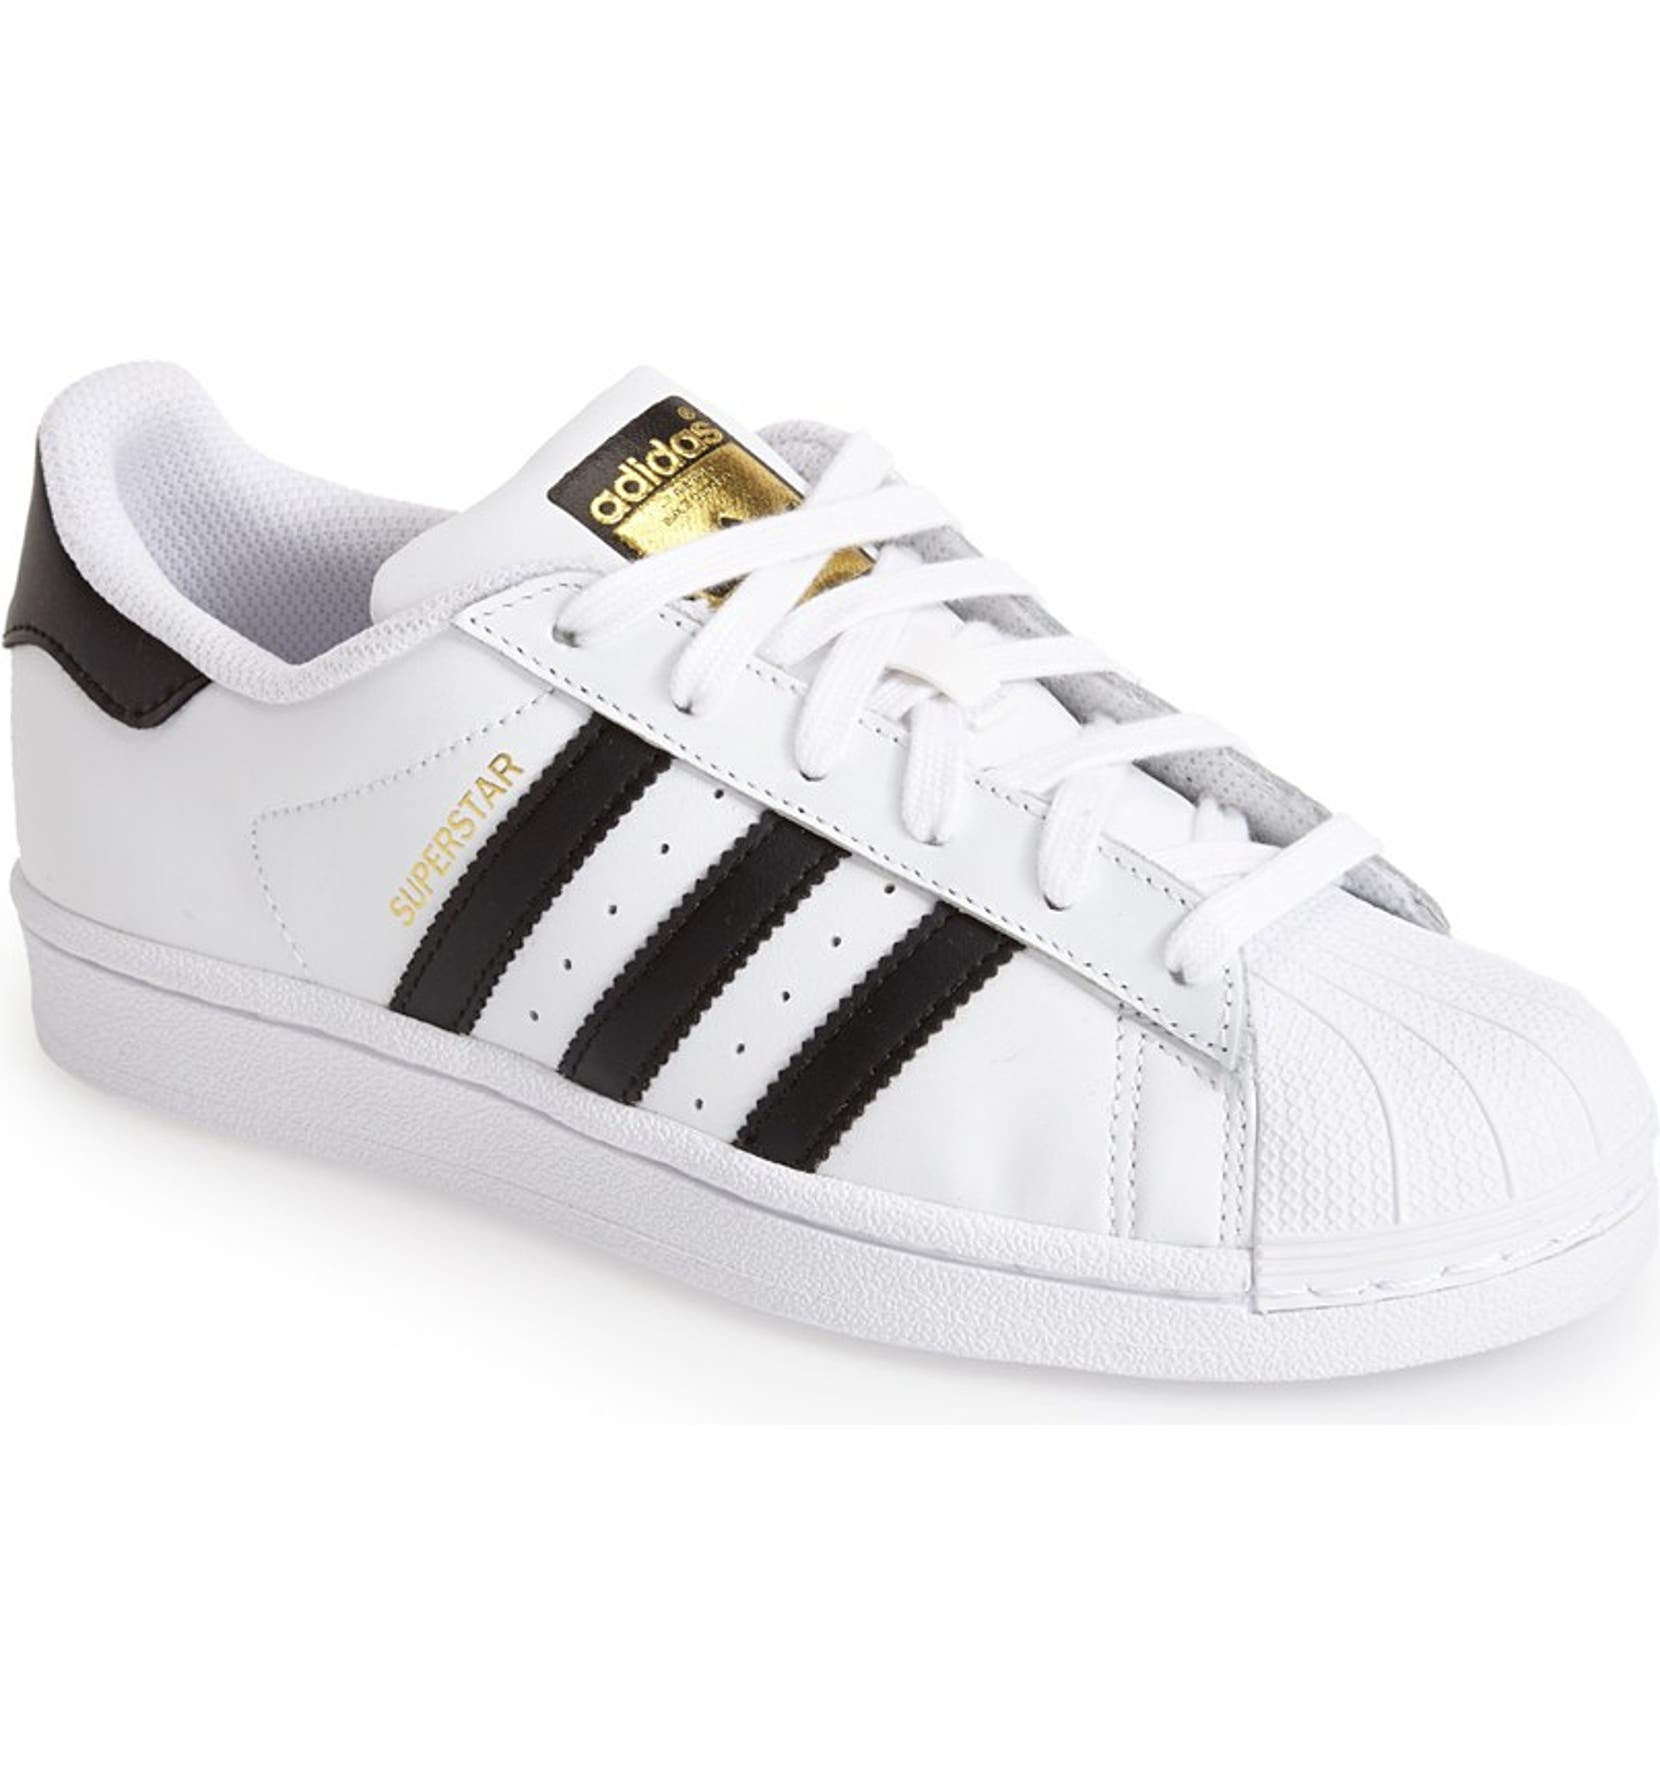 adidas superstar ii black white